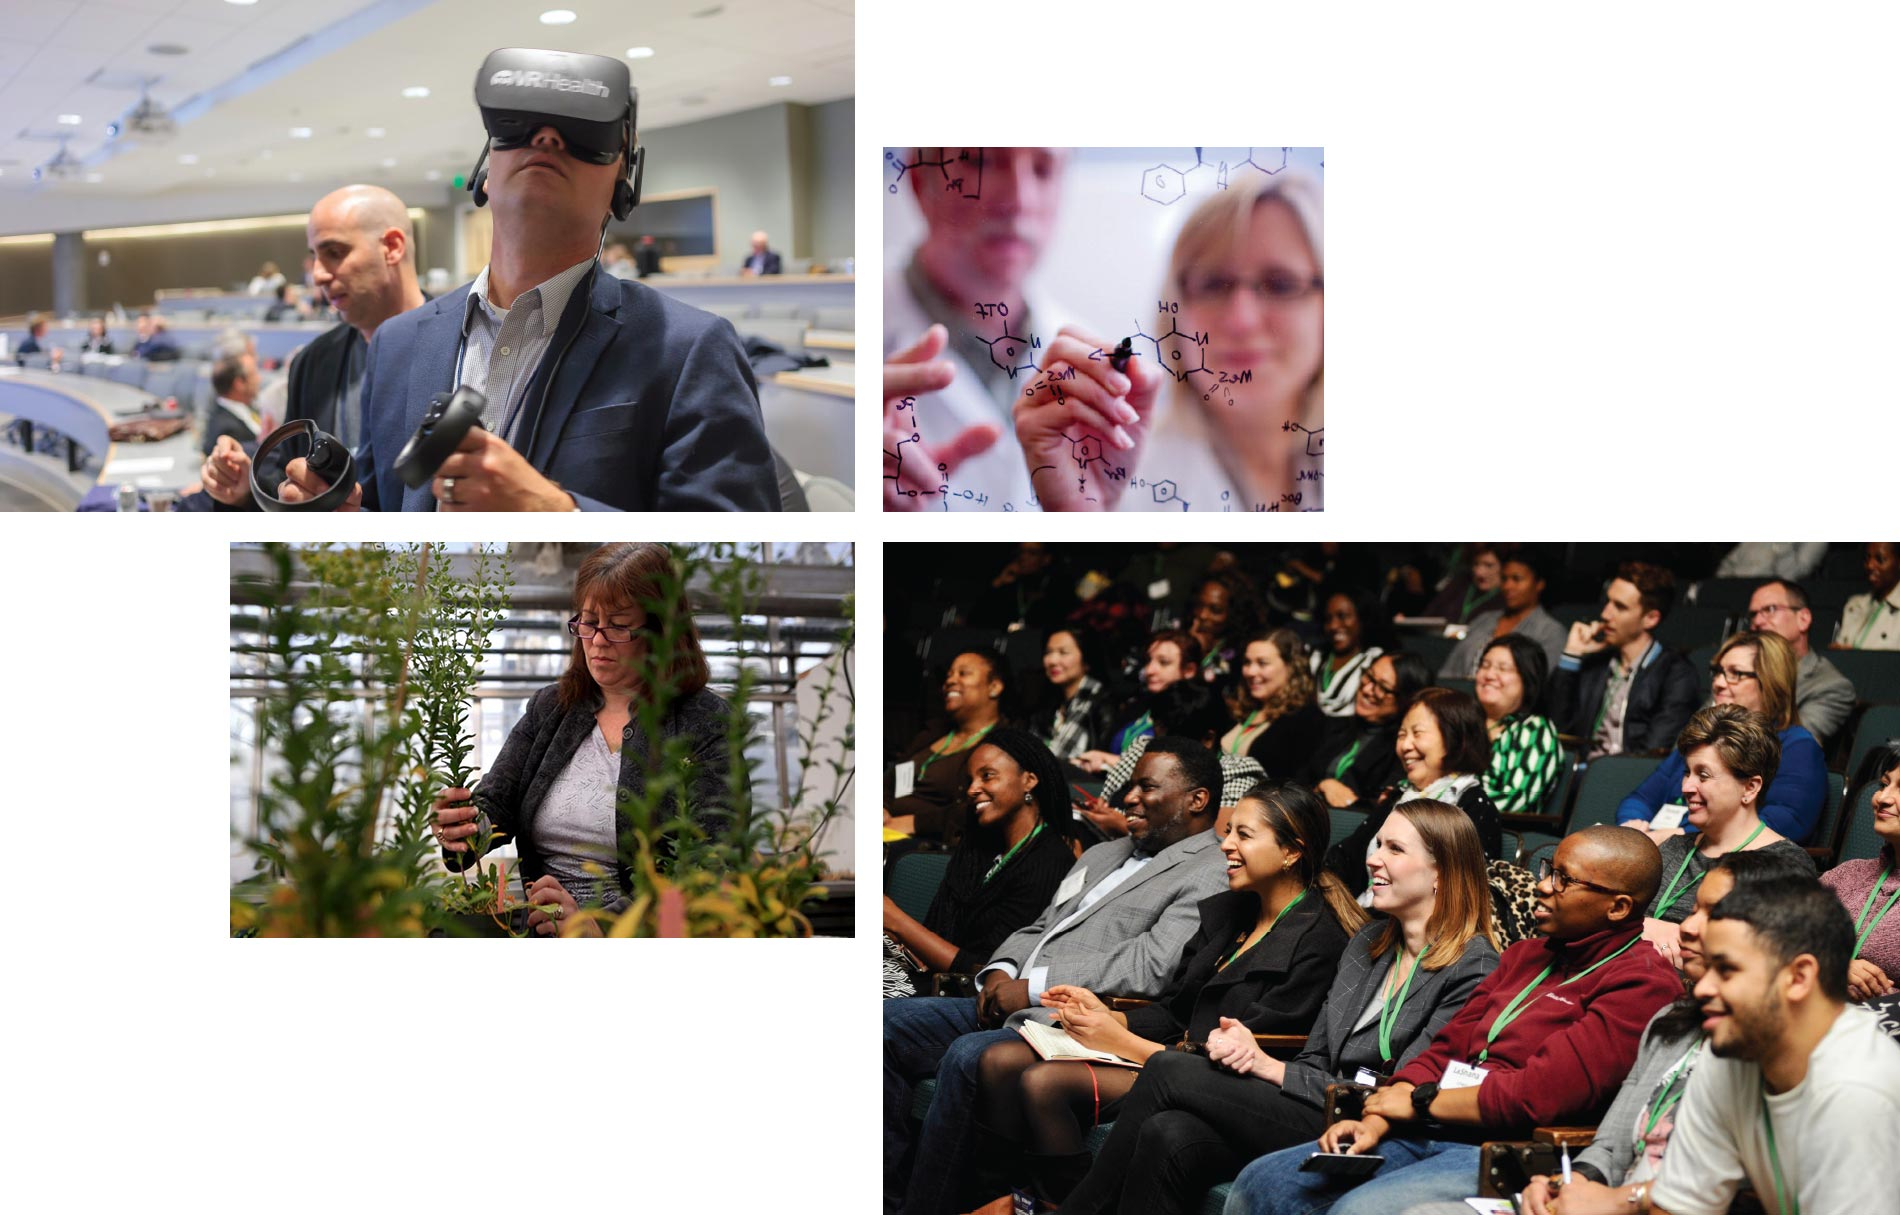 Mix of tech, biotech, and event images